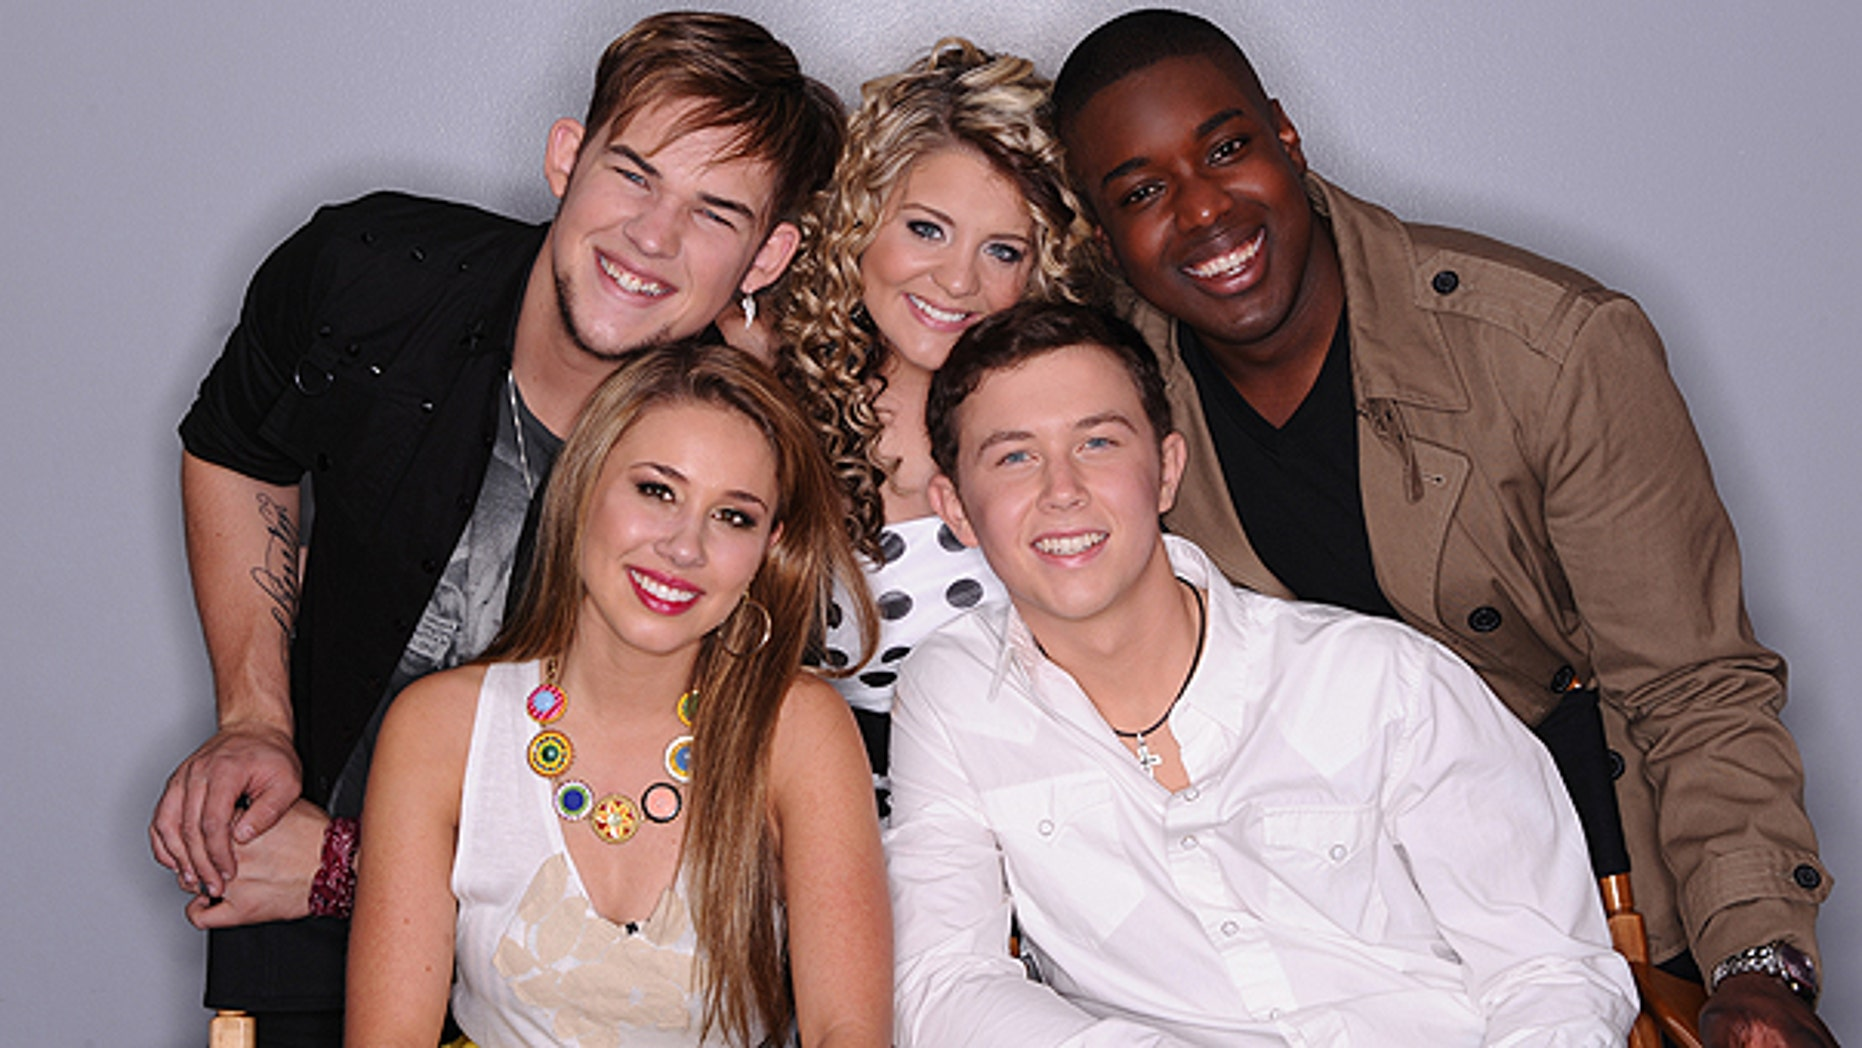 In this April 28, 2011 photo released by FOX, the remaining contestants on the singing competition series, 'American Idol,' clockwise from back row left, James Durbin, Lauren Alaina, Jacob Lusk, Scotty McCreery and Hayley Reinhart are shown in Los Angeles.